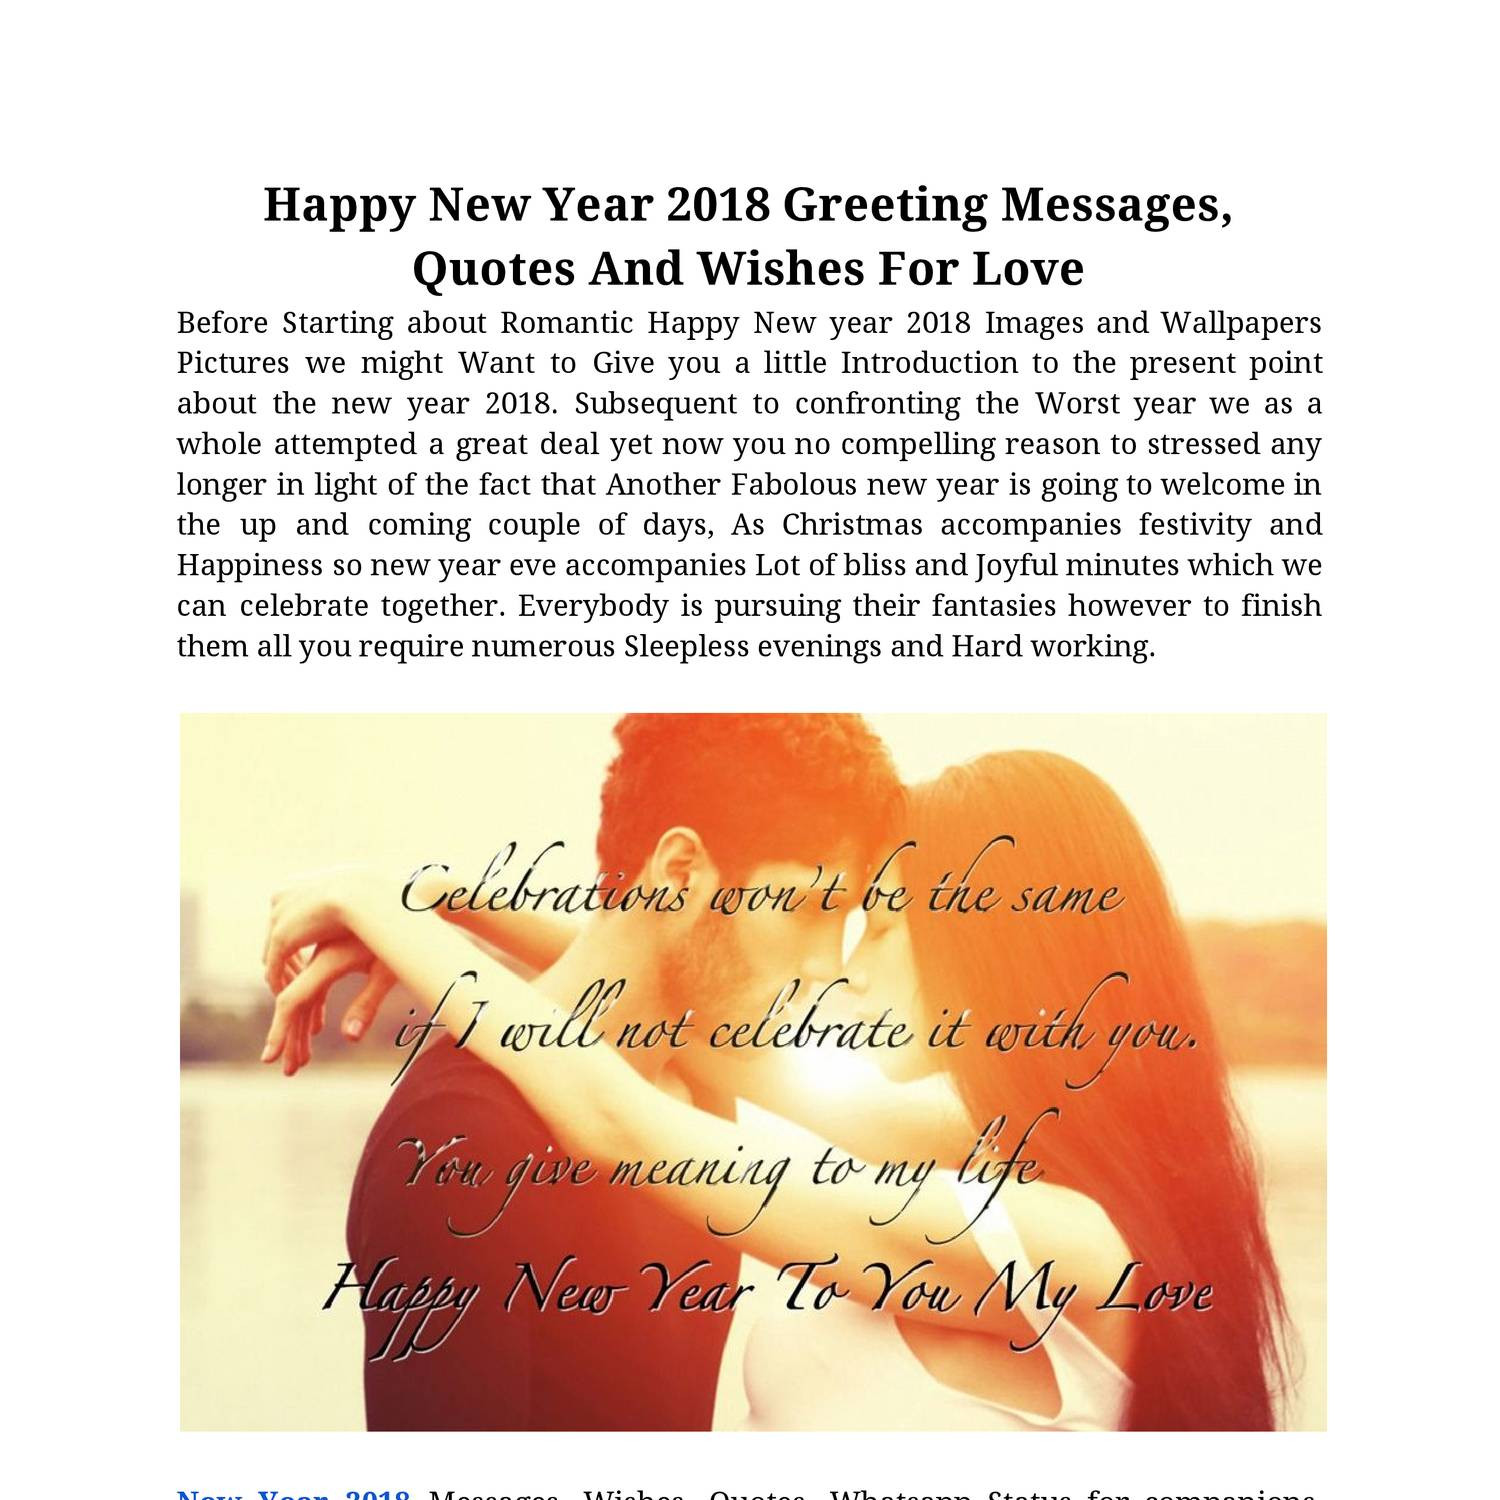 Happy New Year 2018 Greeting Messages Quotes And Wishes For Love Pdf Docdroid